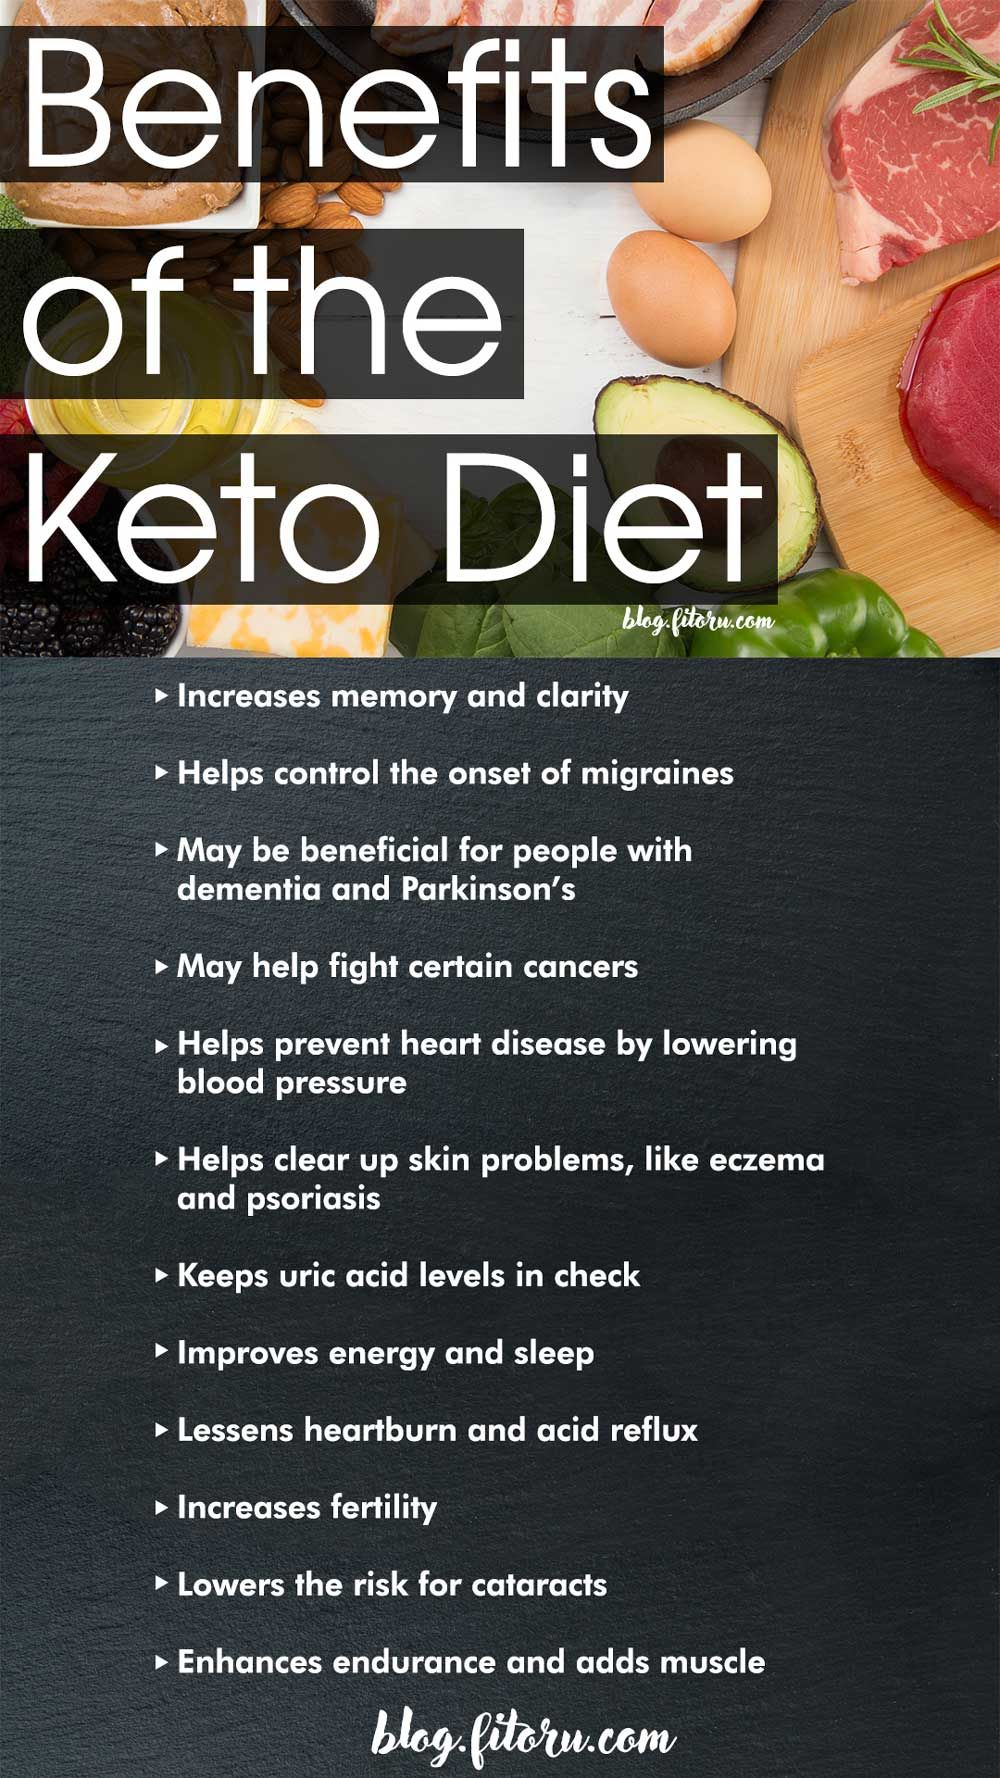 Keto Diet Diarrhea What S The Scoop On This Messy Situation Fitoru Keto Diet Benefits Keto Diet Side Effects Ketogenic Diet Plan